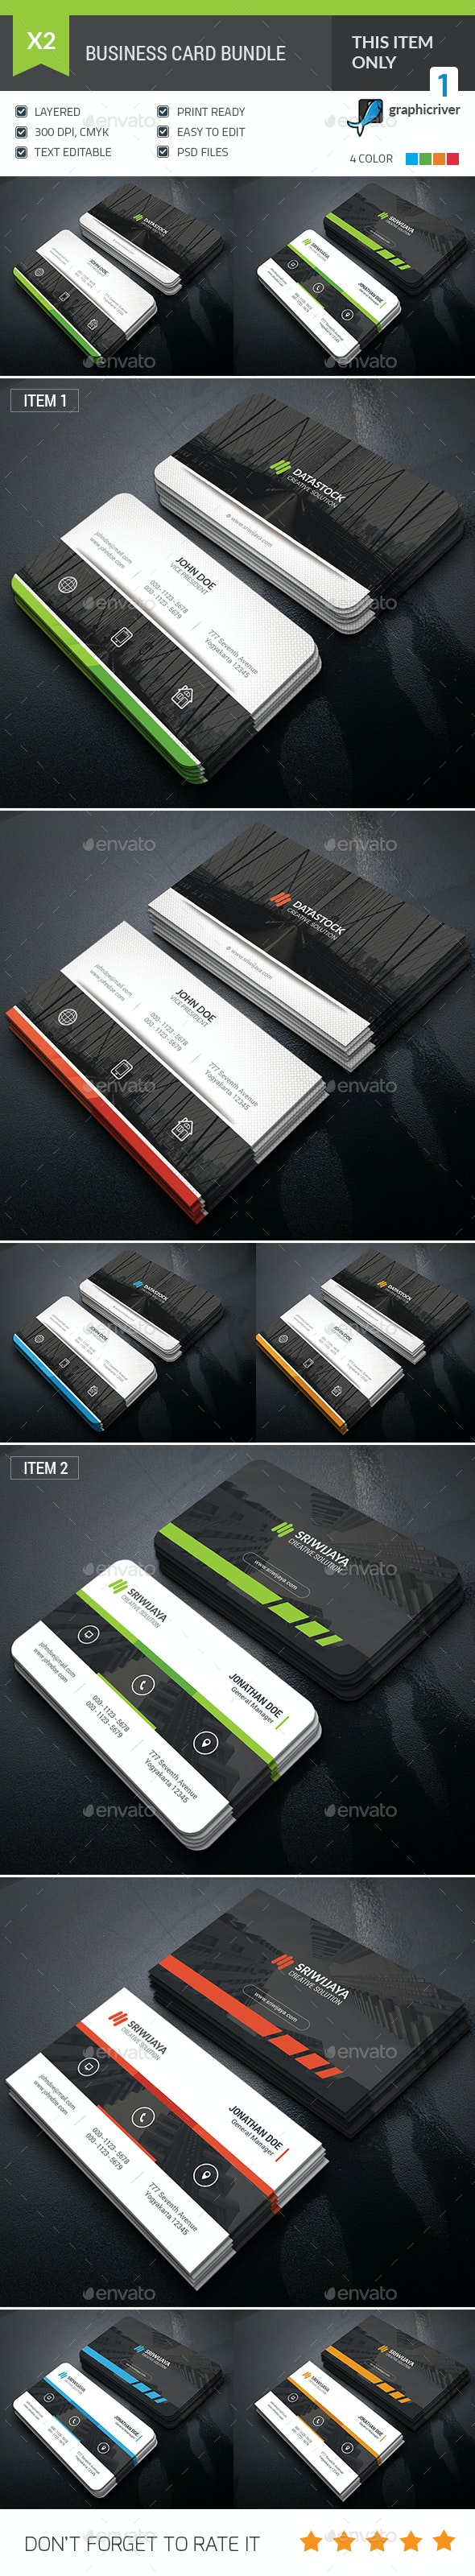 Business Card Bundle - Corporate Business Cards